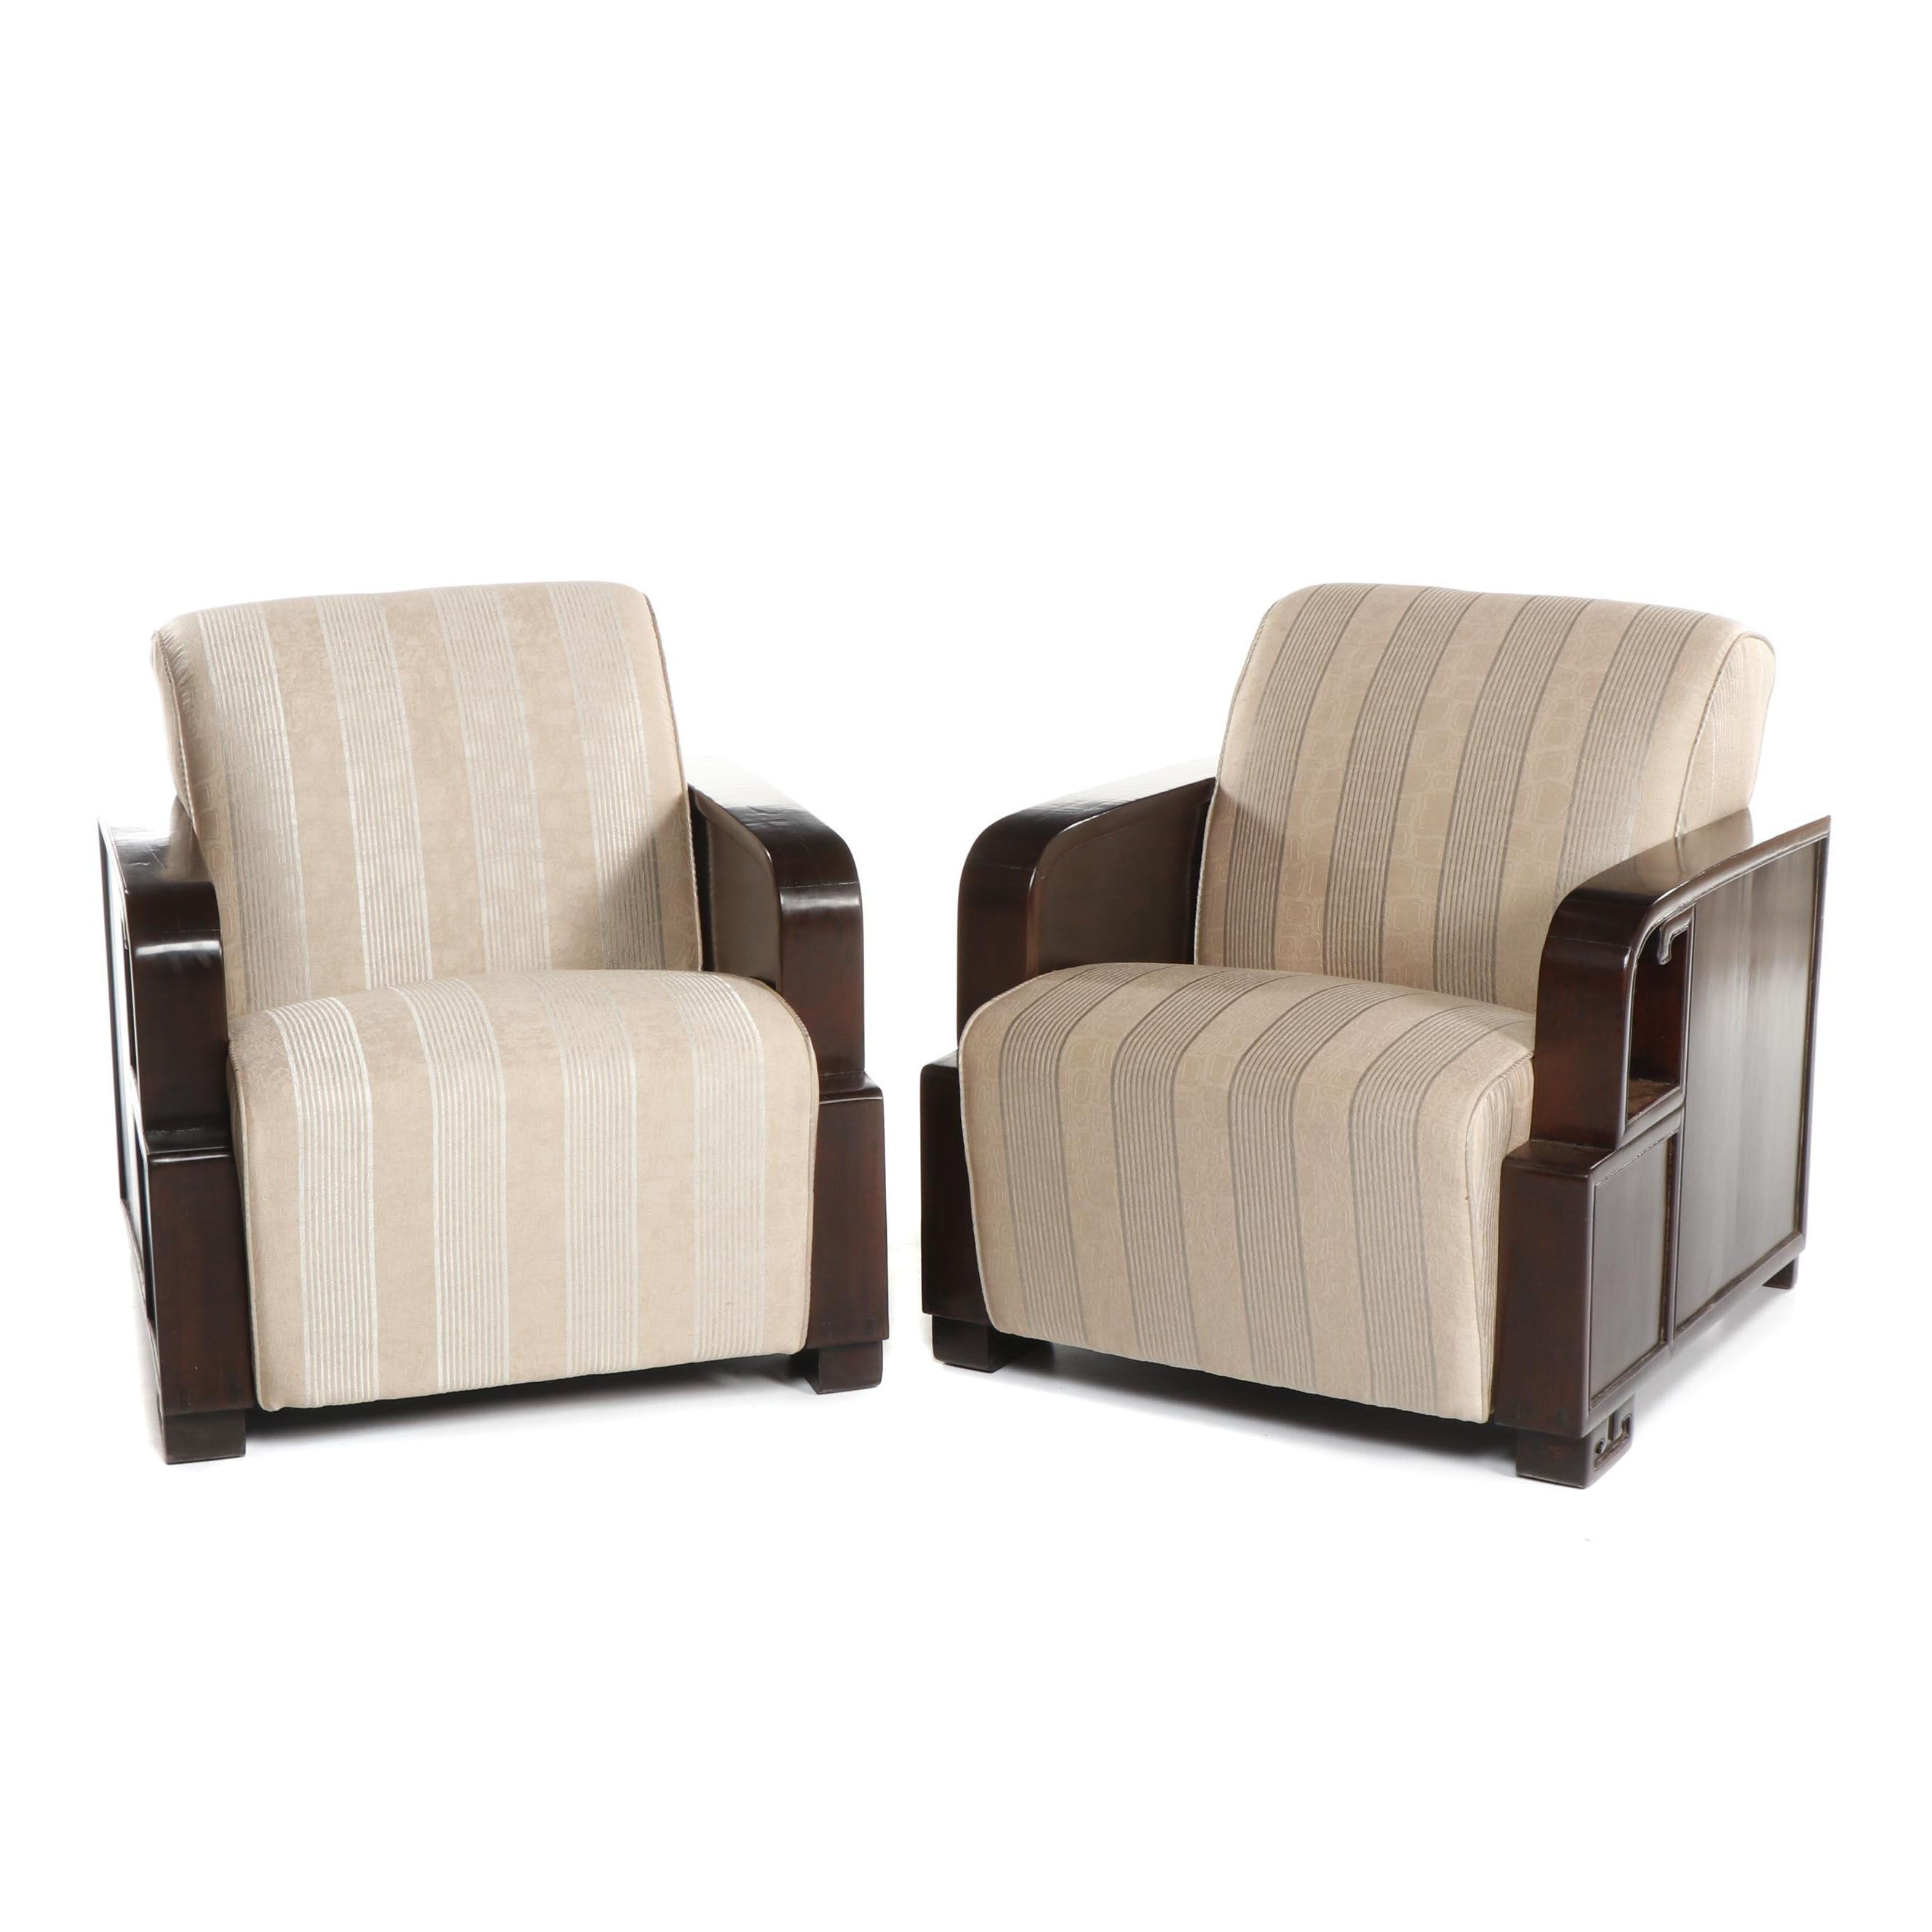 Art Deco Style Walnut Framed Satin Upholstered Armchairs, 21st Century